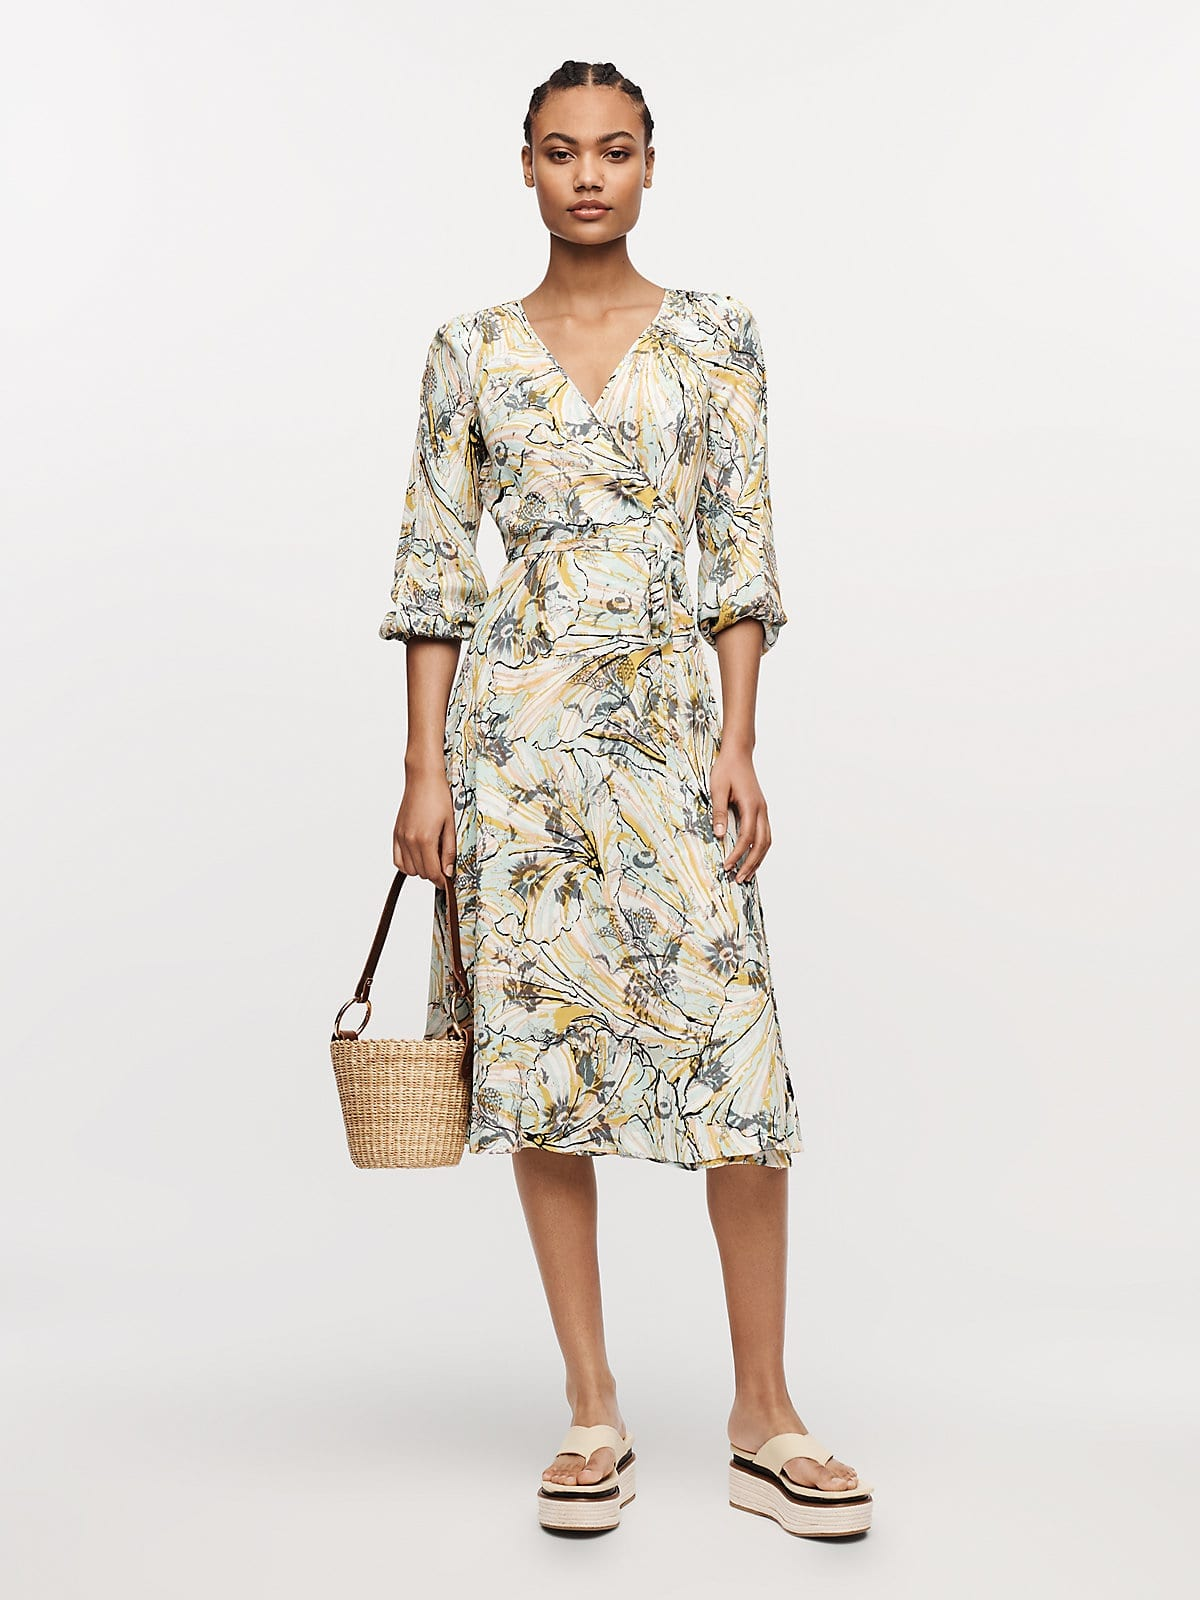 DVF Sample sale! Up to 80% off!